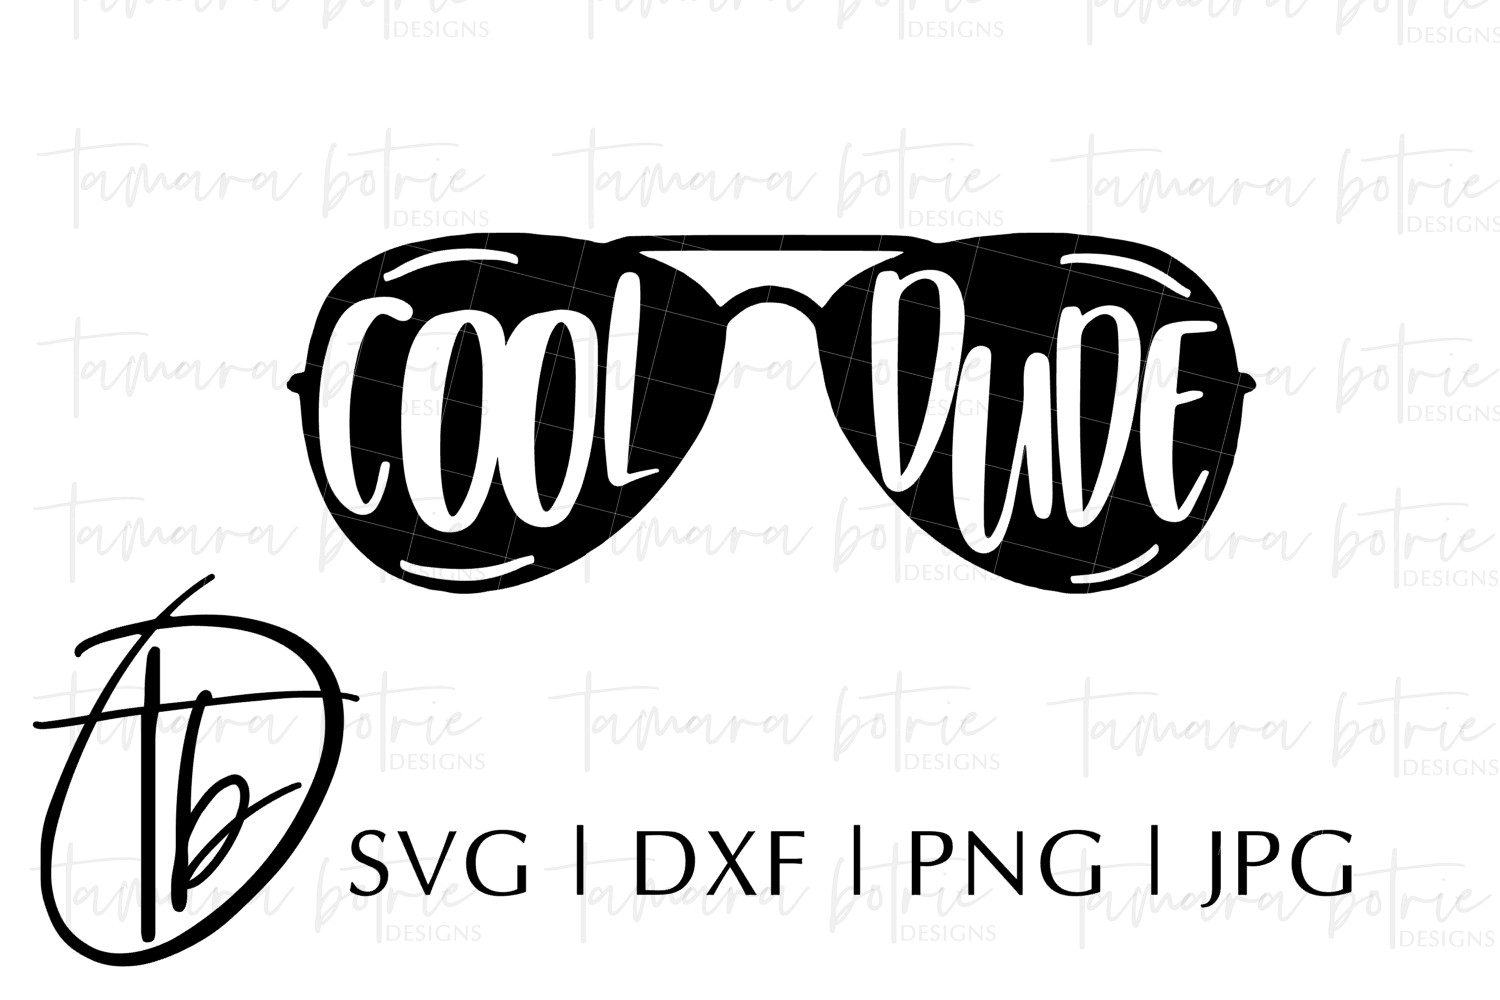 Cool Dude SVG, Dude SVG, Sunglasses SVG, Aviator Glasses SVG